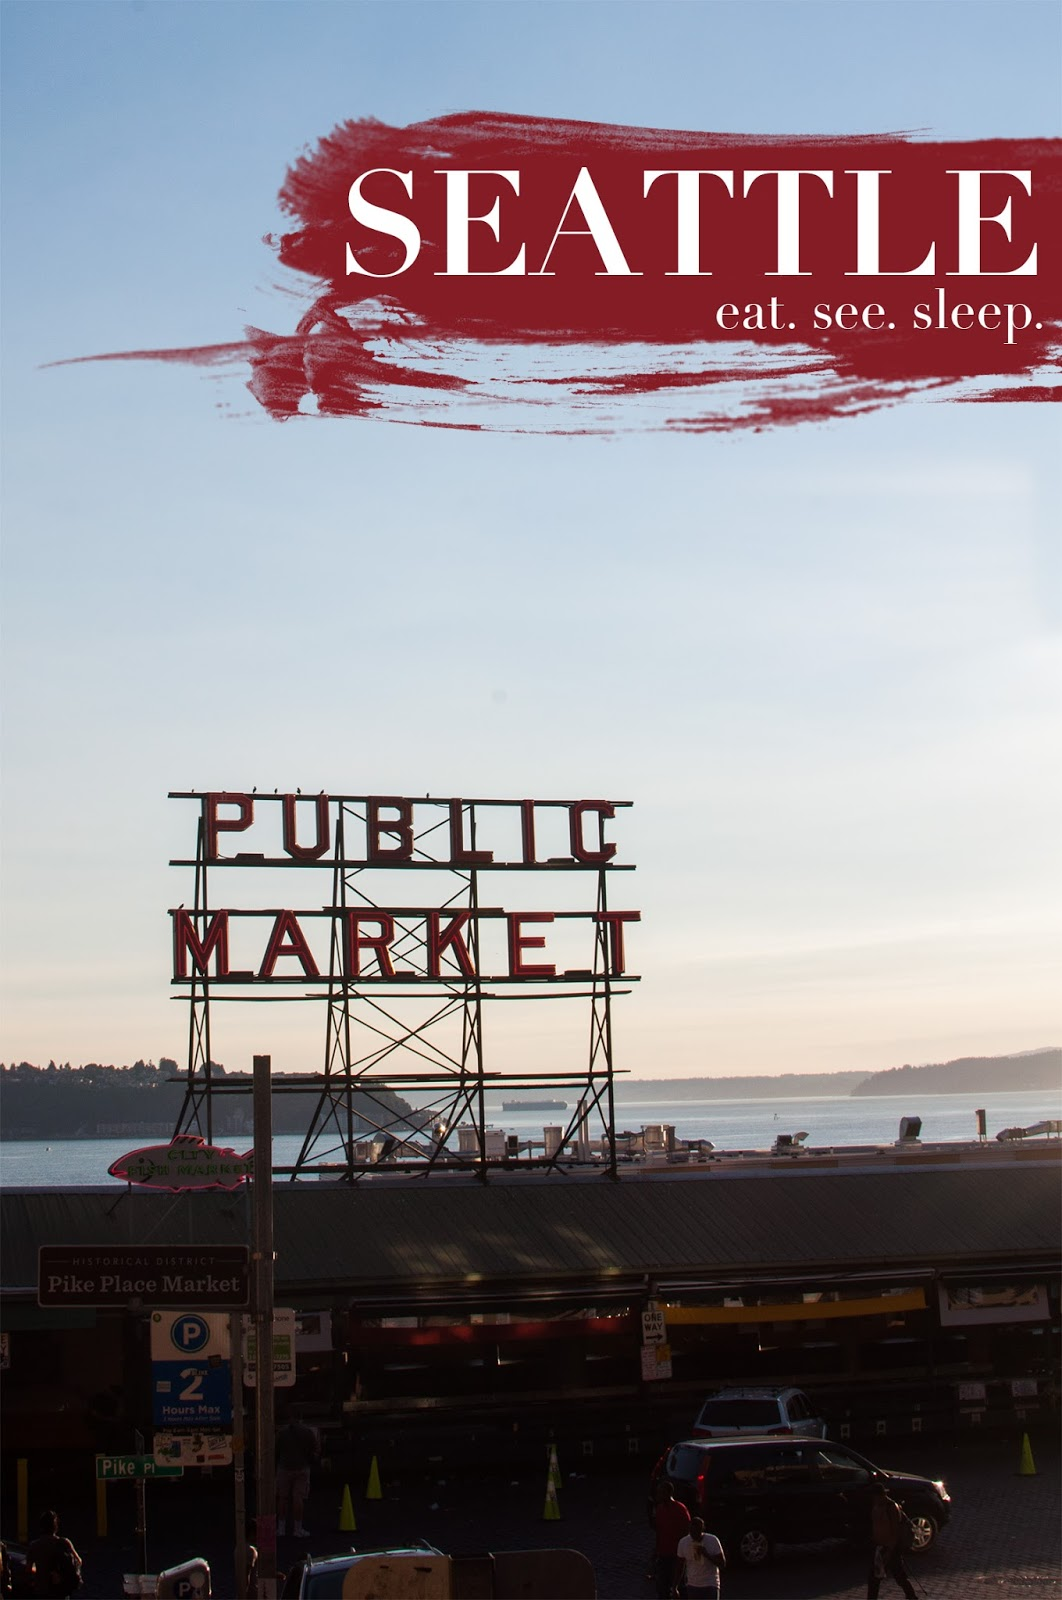 seattle travel diary, seattle where to eat, seattle where to sleep, seattle what to see, seattle citypass review, seattle citypass is it worth it